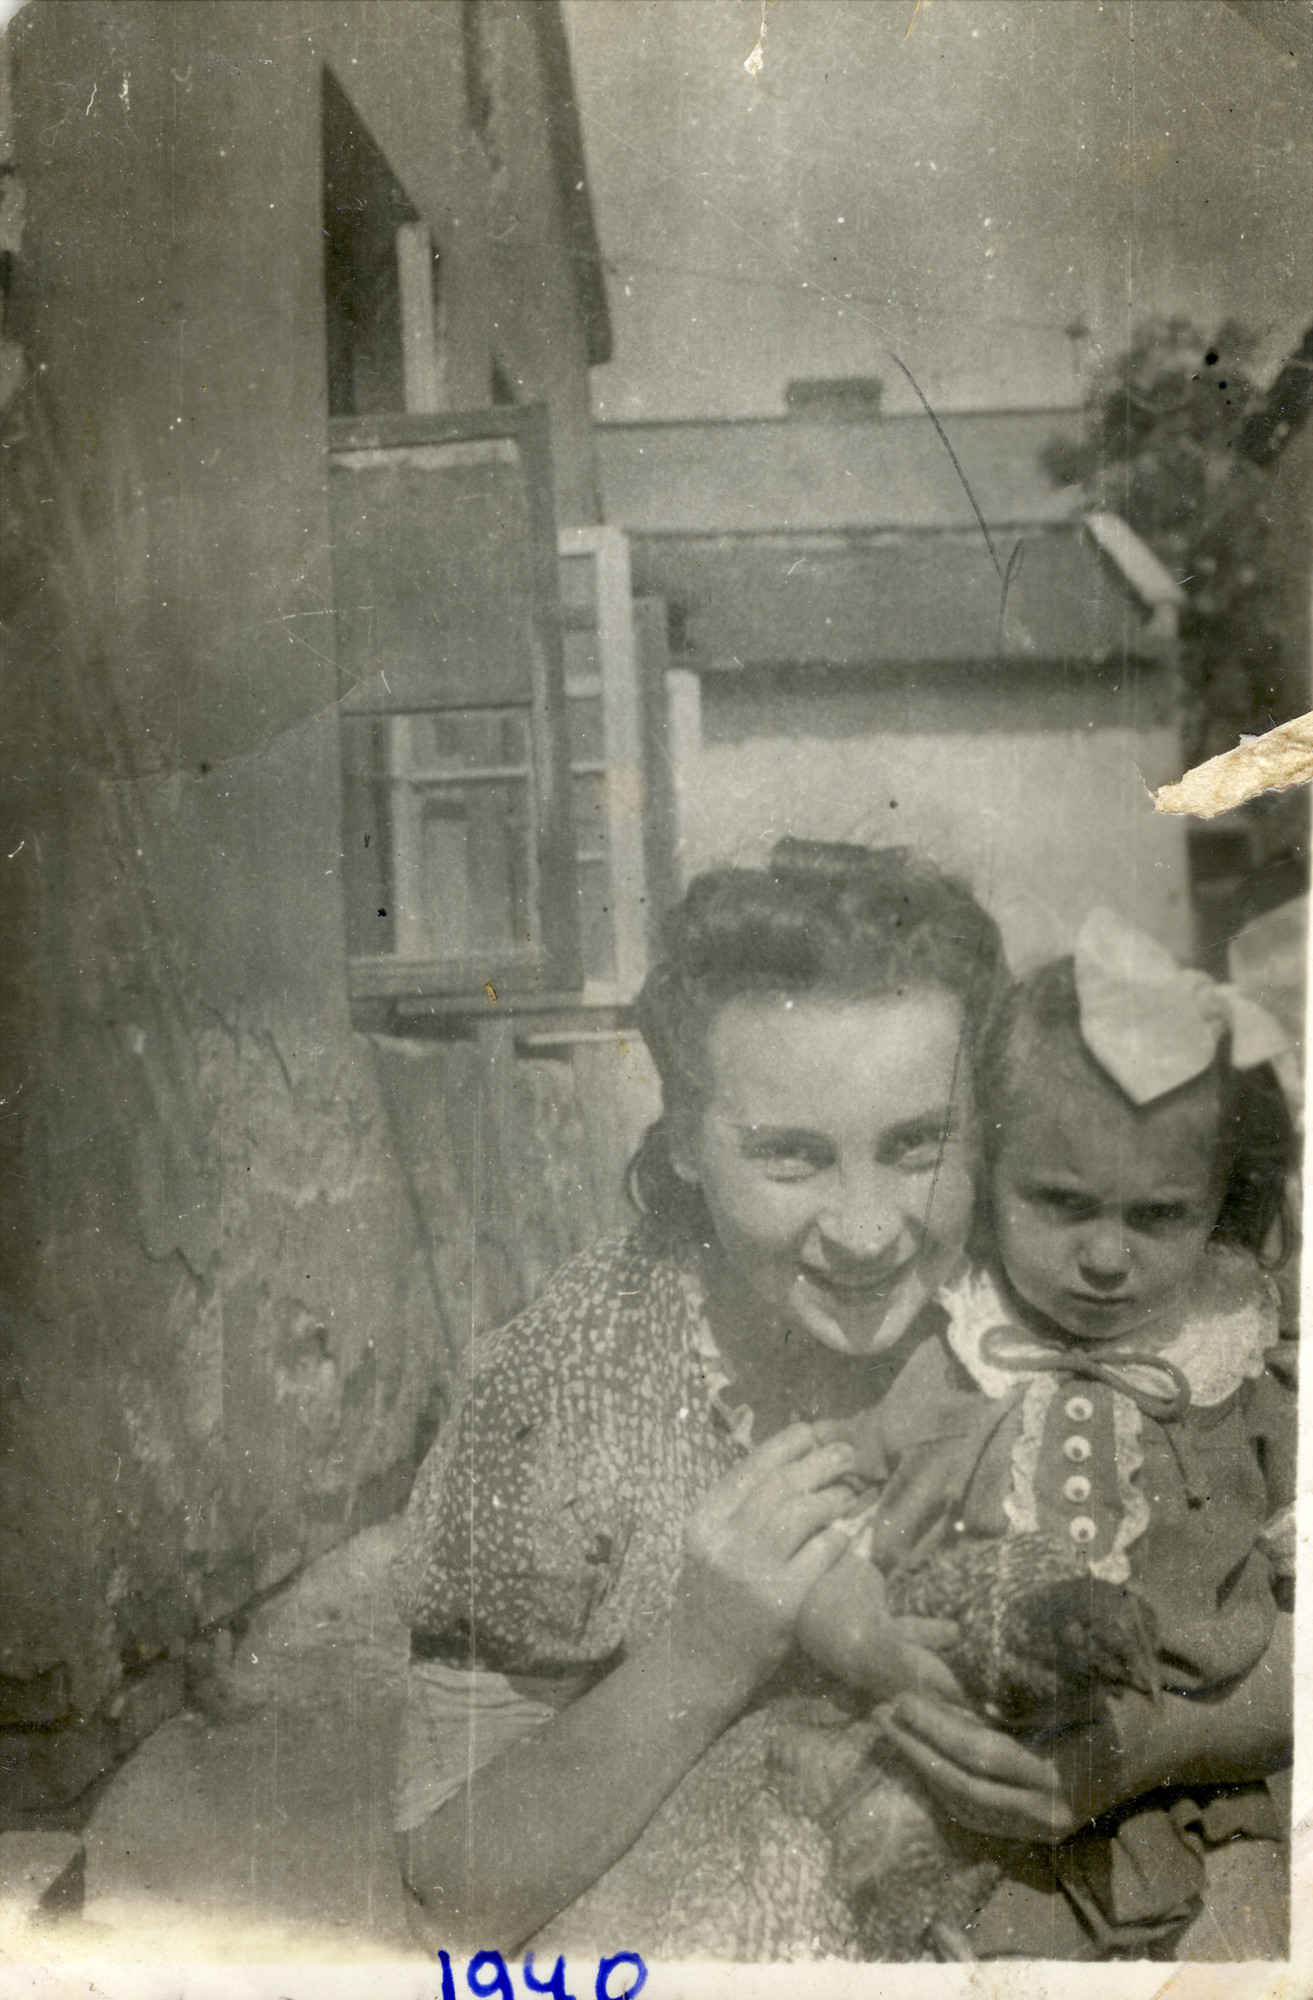 Adela Alterman and her daughter, Leah pose in Ostrowiec prior to going into hiding